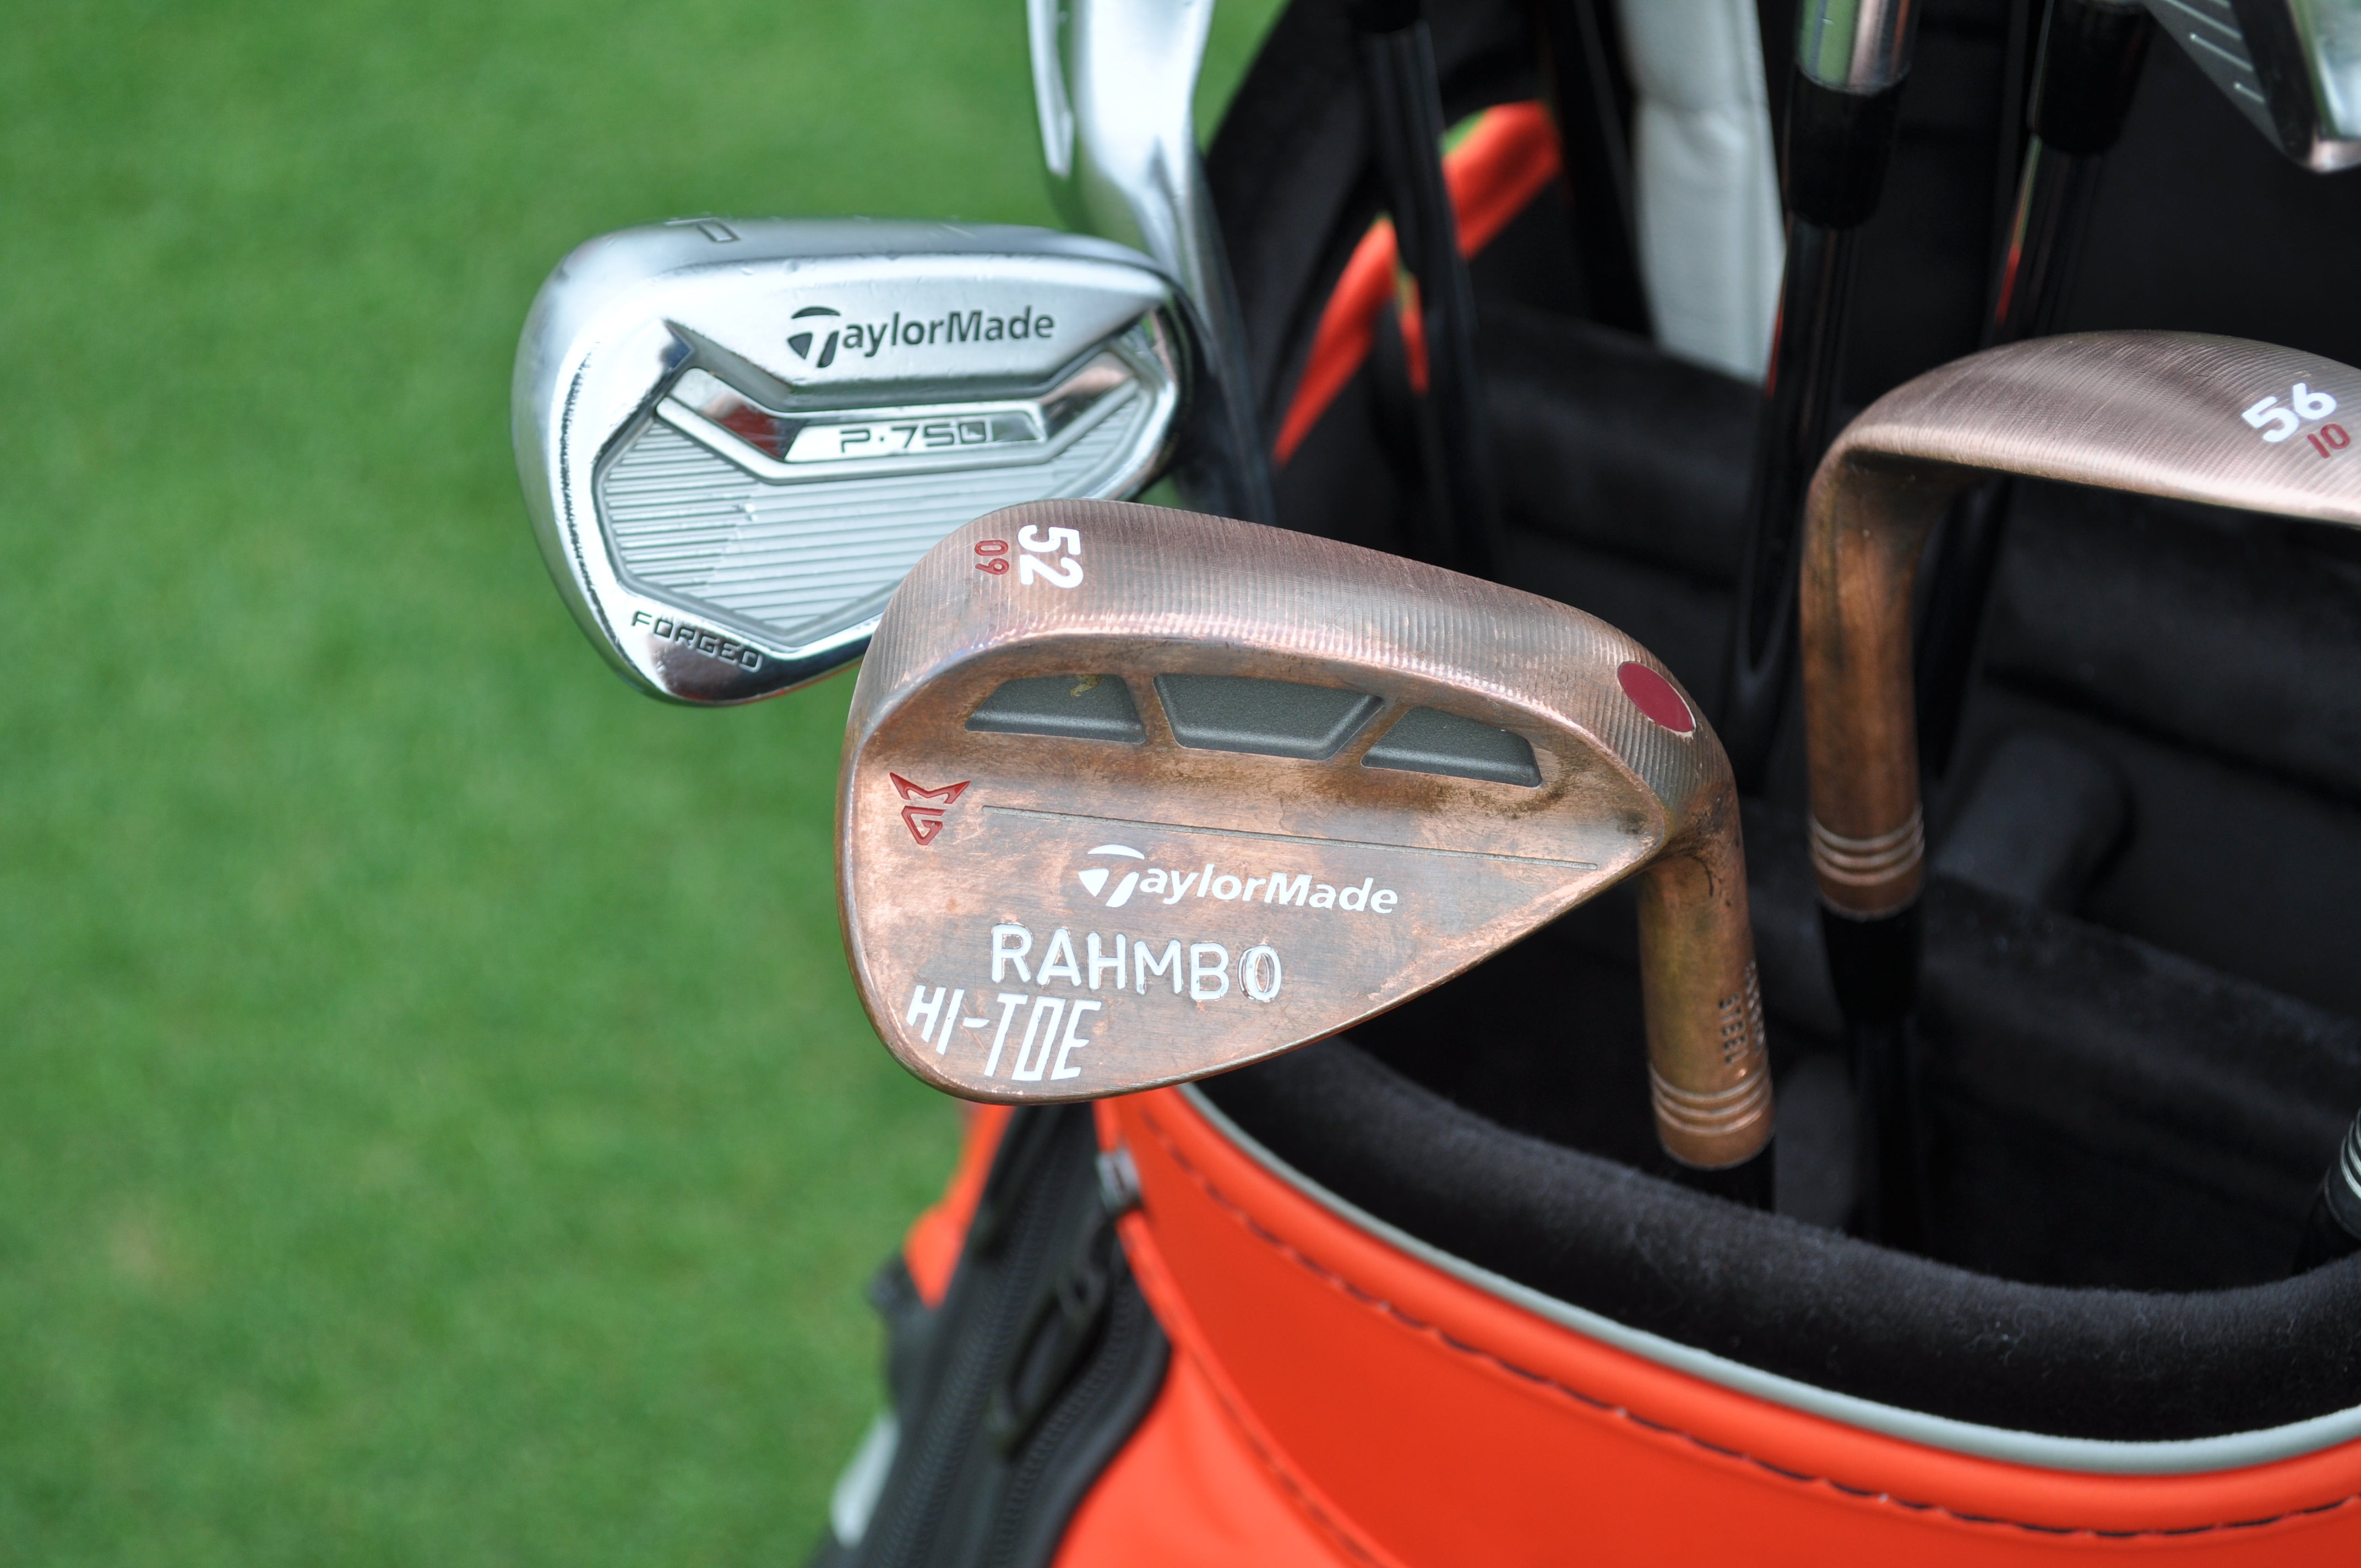 Jon Rahm's 52-degree TaylorMade Milled Grind Hi-Toe wedge.